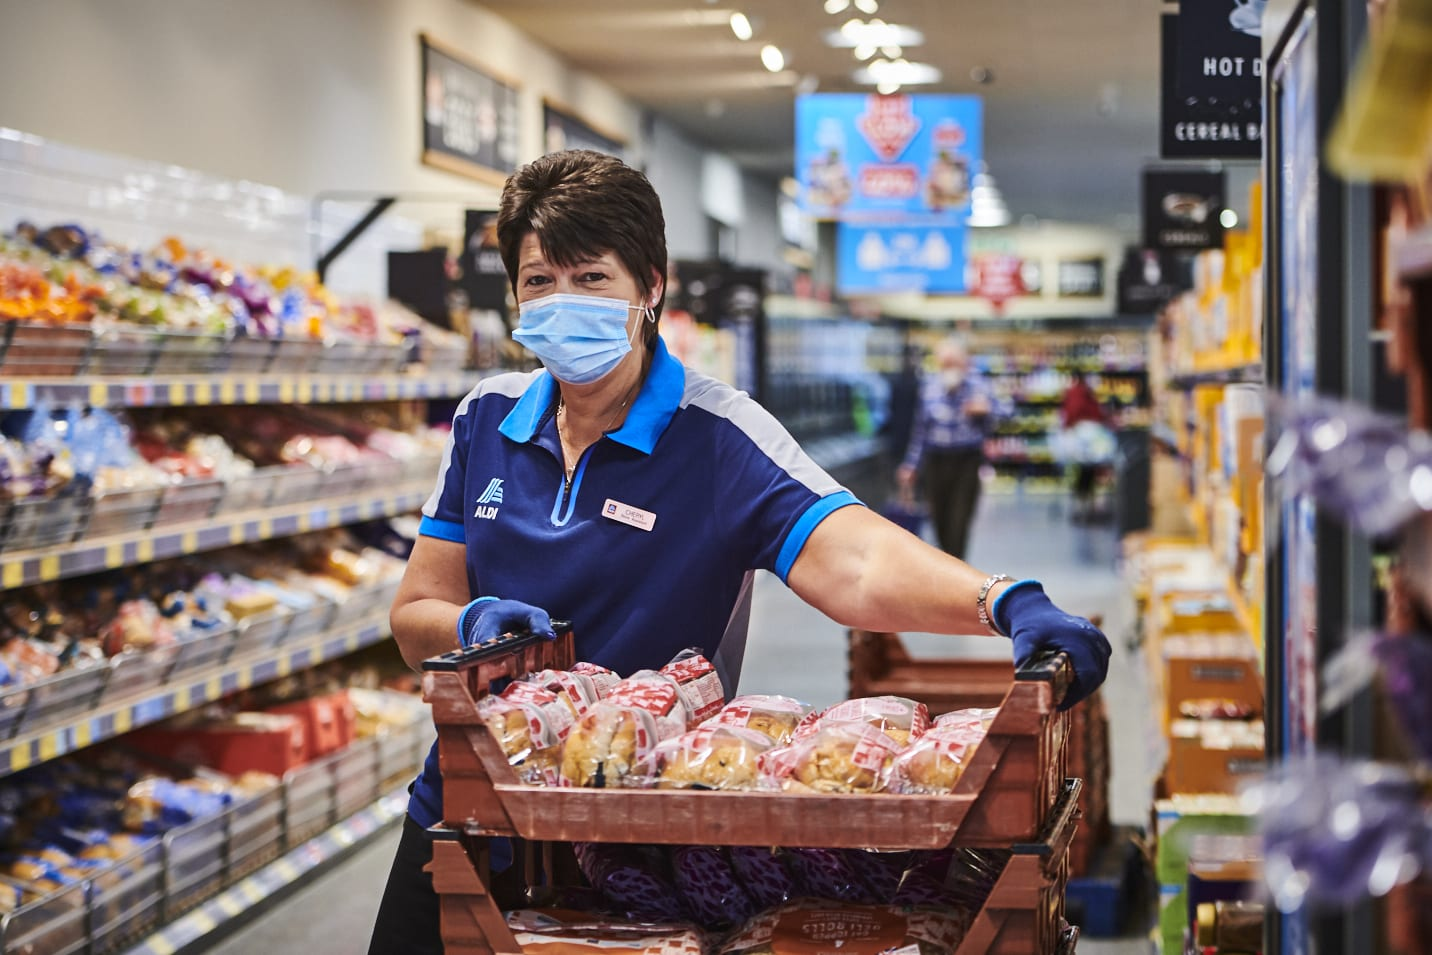 Aldi is hiring over 1,000 new staff this Christmas - This is how to apply